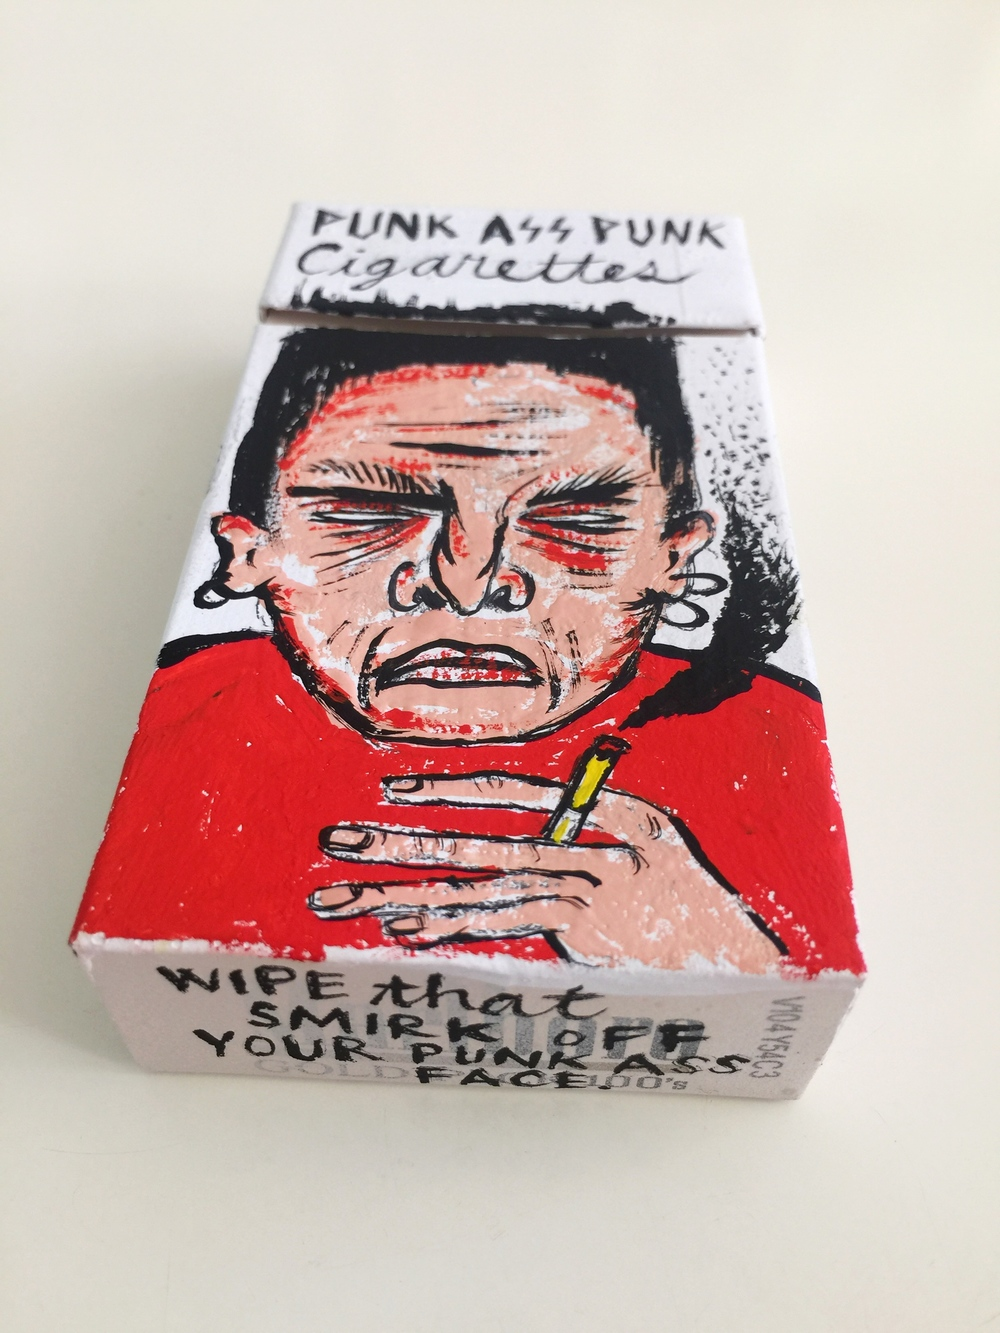 PUNK ASS PUNK CIGARETTES